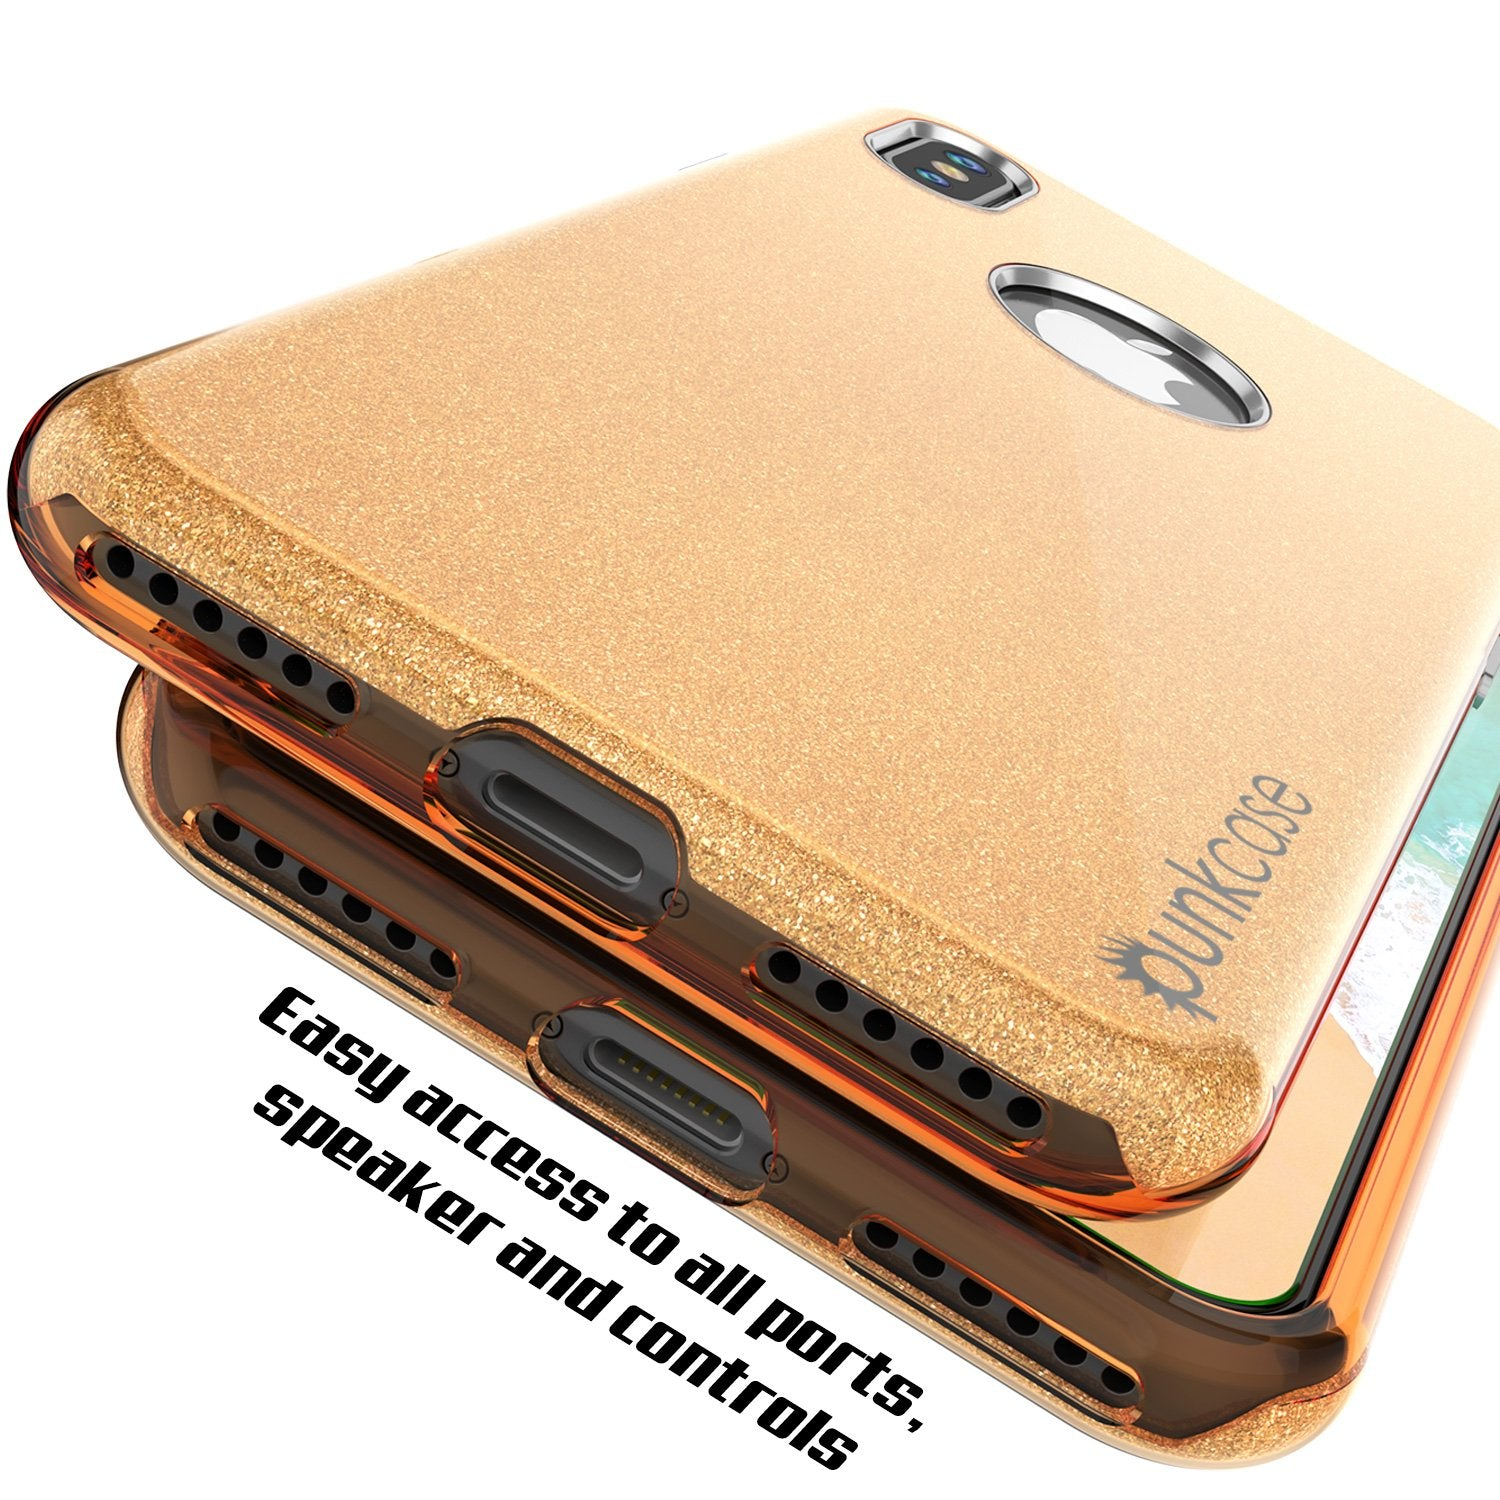 iPhone X Case, Punkcase Galactic 2.0 Series Ultra Slim w/ Tempered Glass Screen Protector | [Gold]